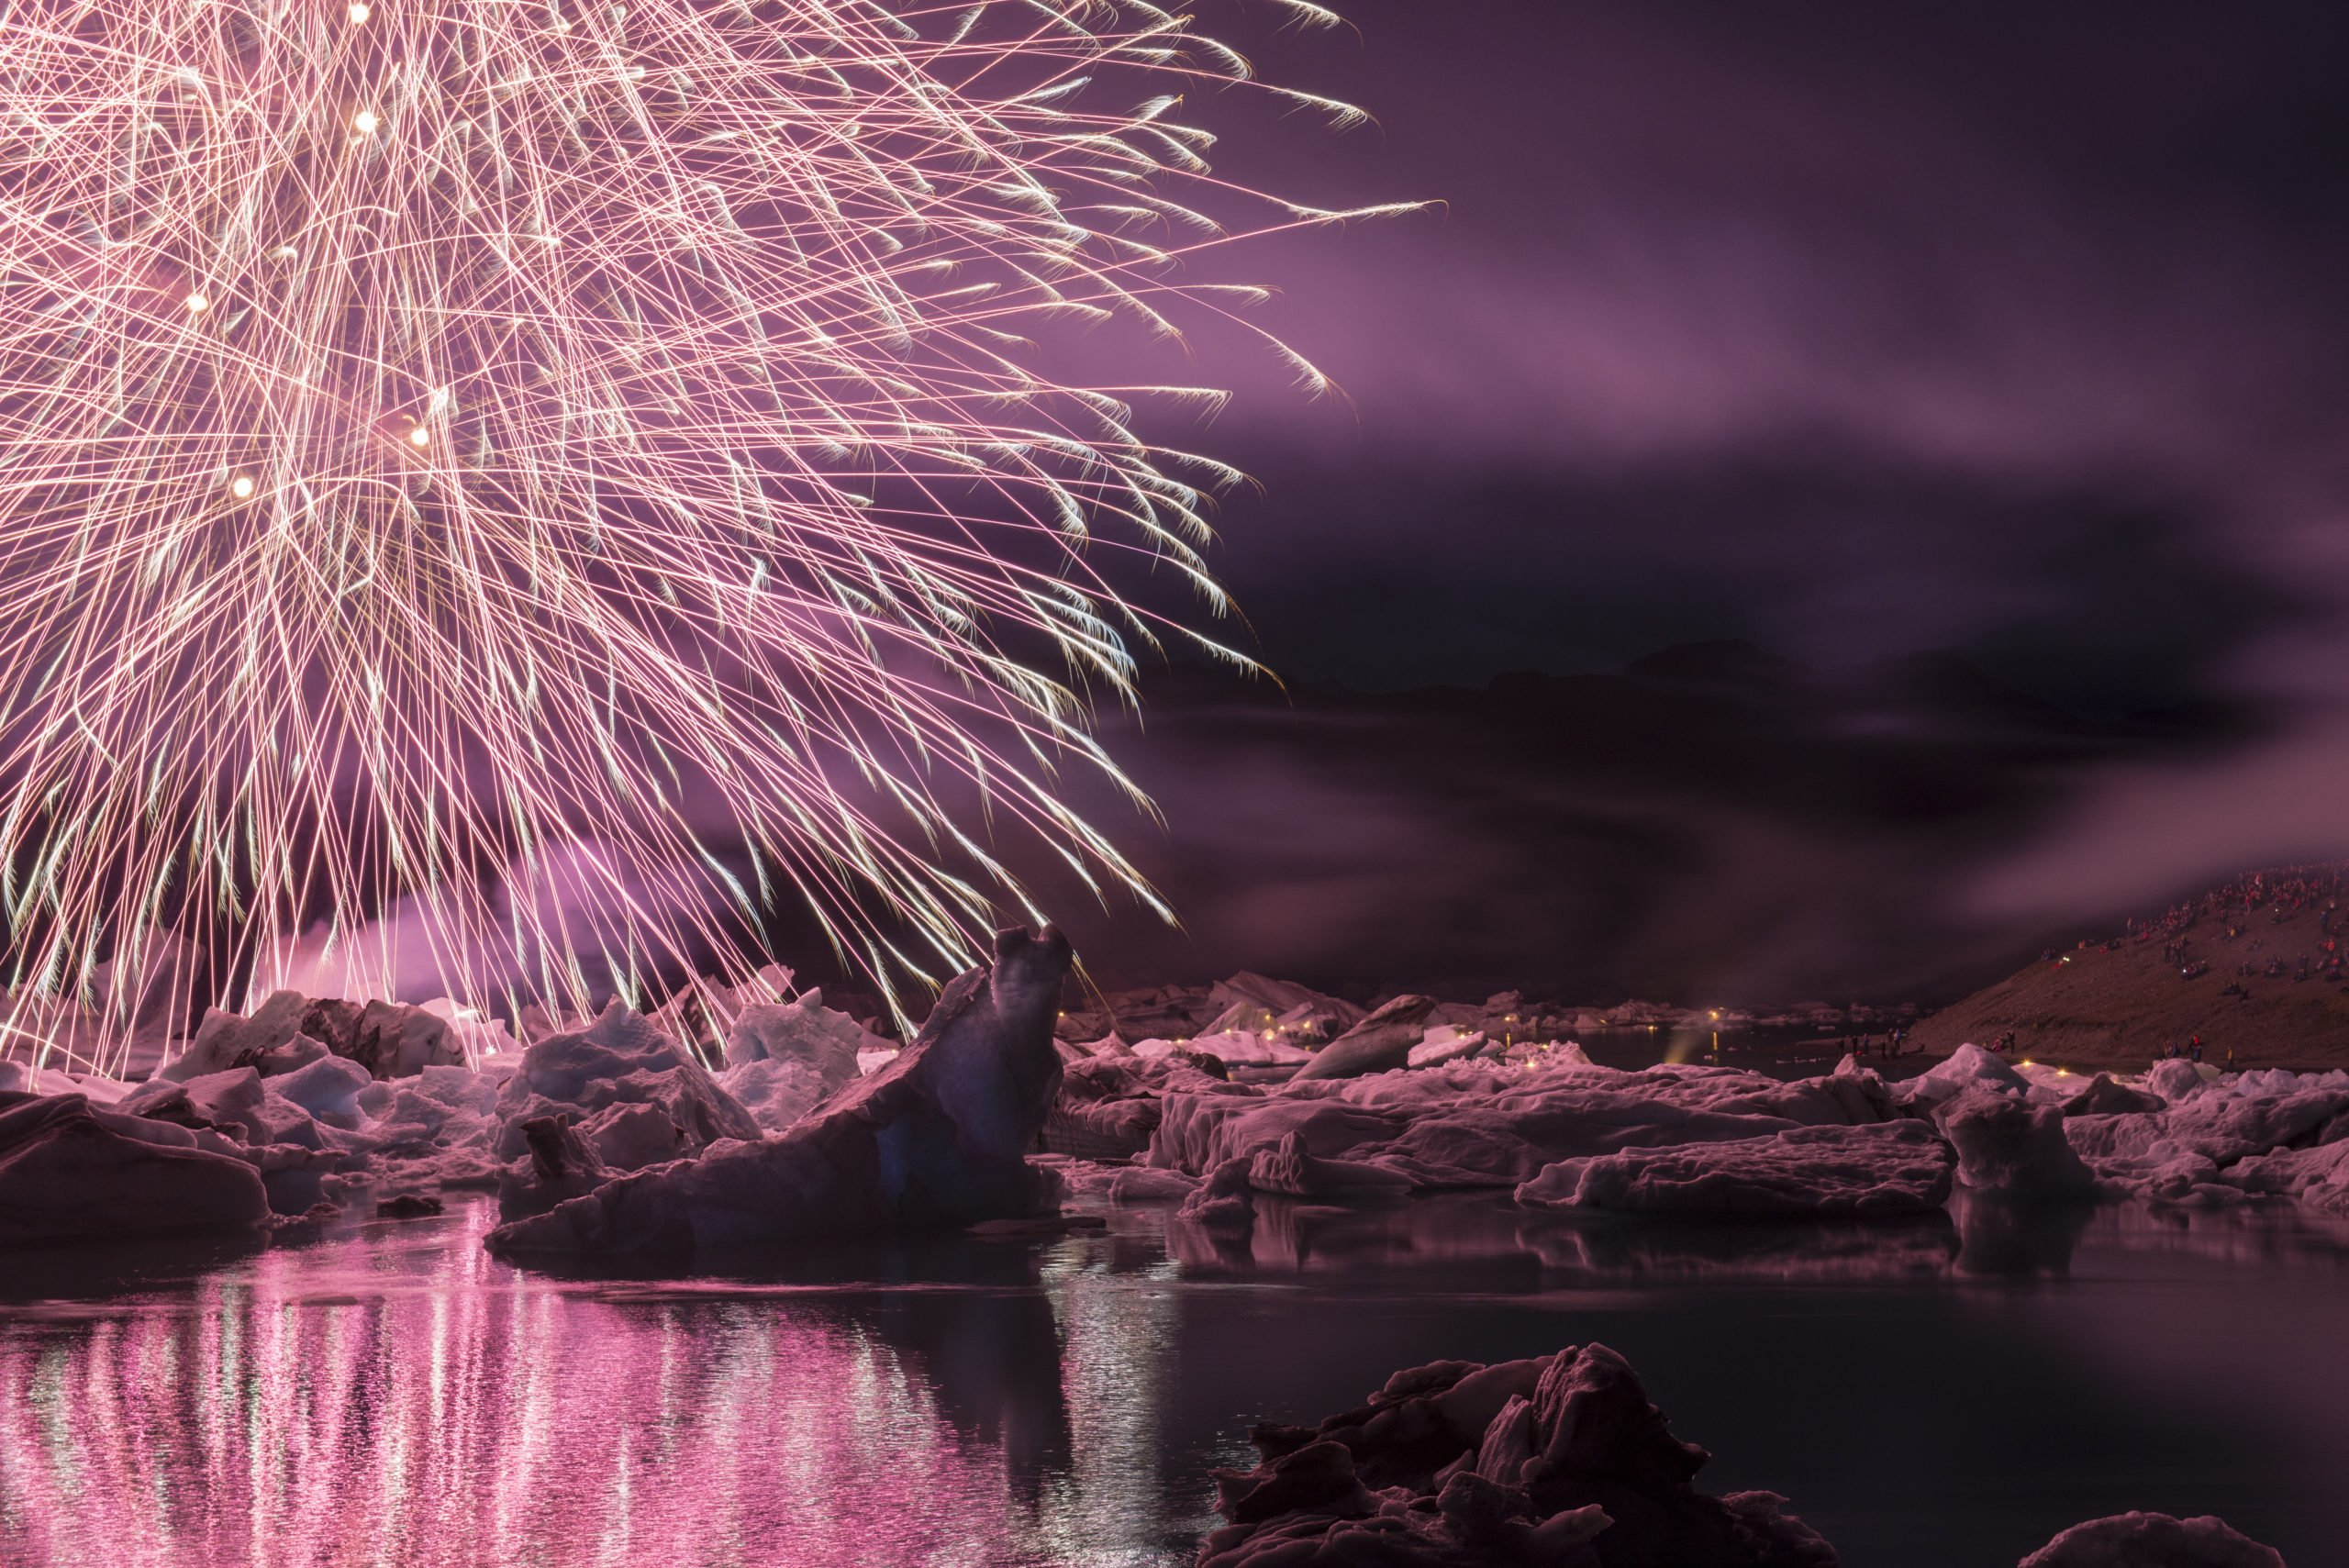 Enjoy Fireworks Display In Our New Year's Eve Bonfire Tour